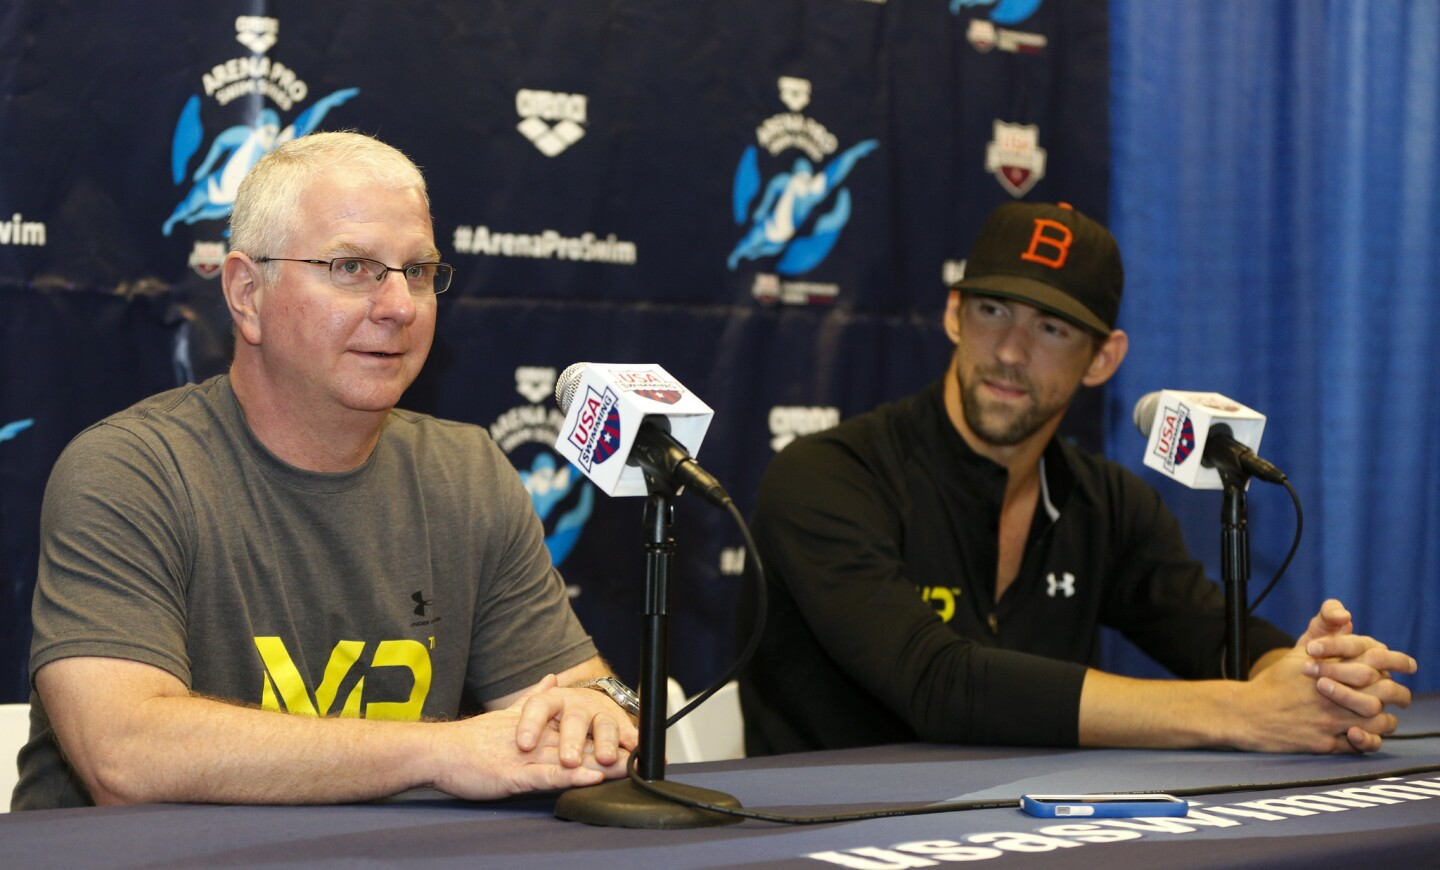 Bob Bowman, left, answers a question as Michael Phelps looks on at a news conference at the Arena Pro Swim Series swim meet in Charlotte, N.C.